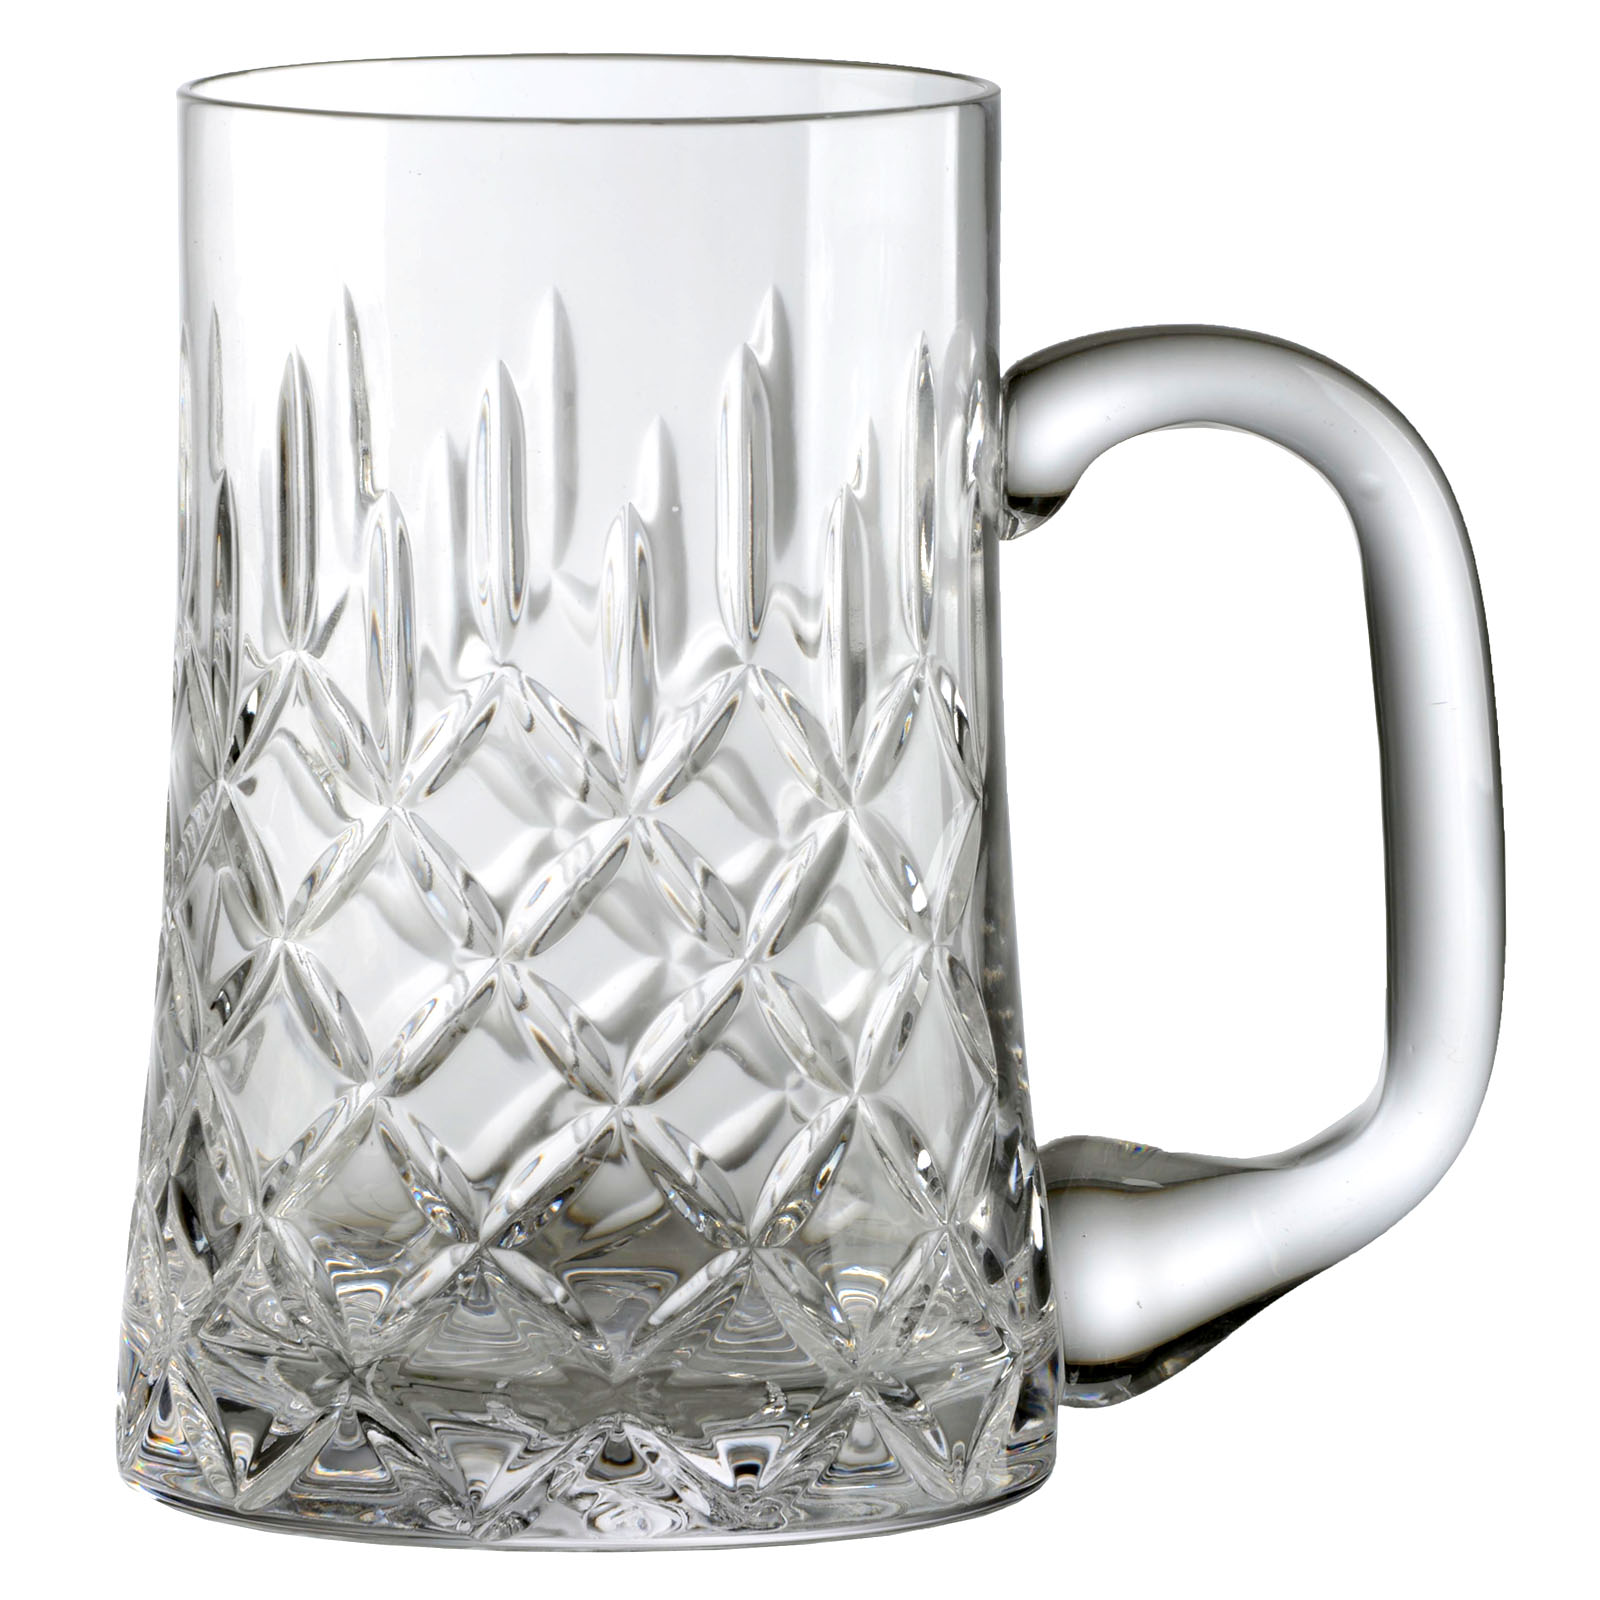 Dorchester Straight Sided Tankard Fully Cut (24%) by Dornberger